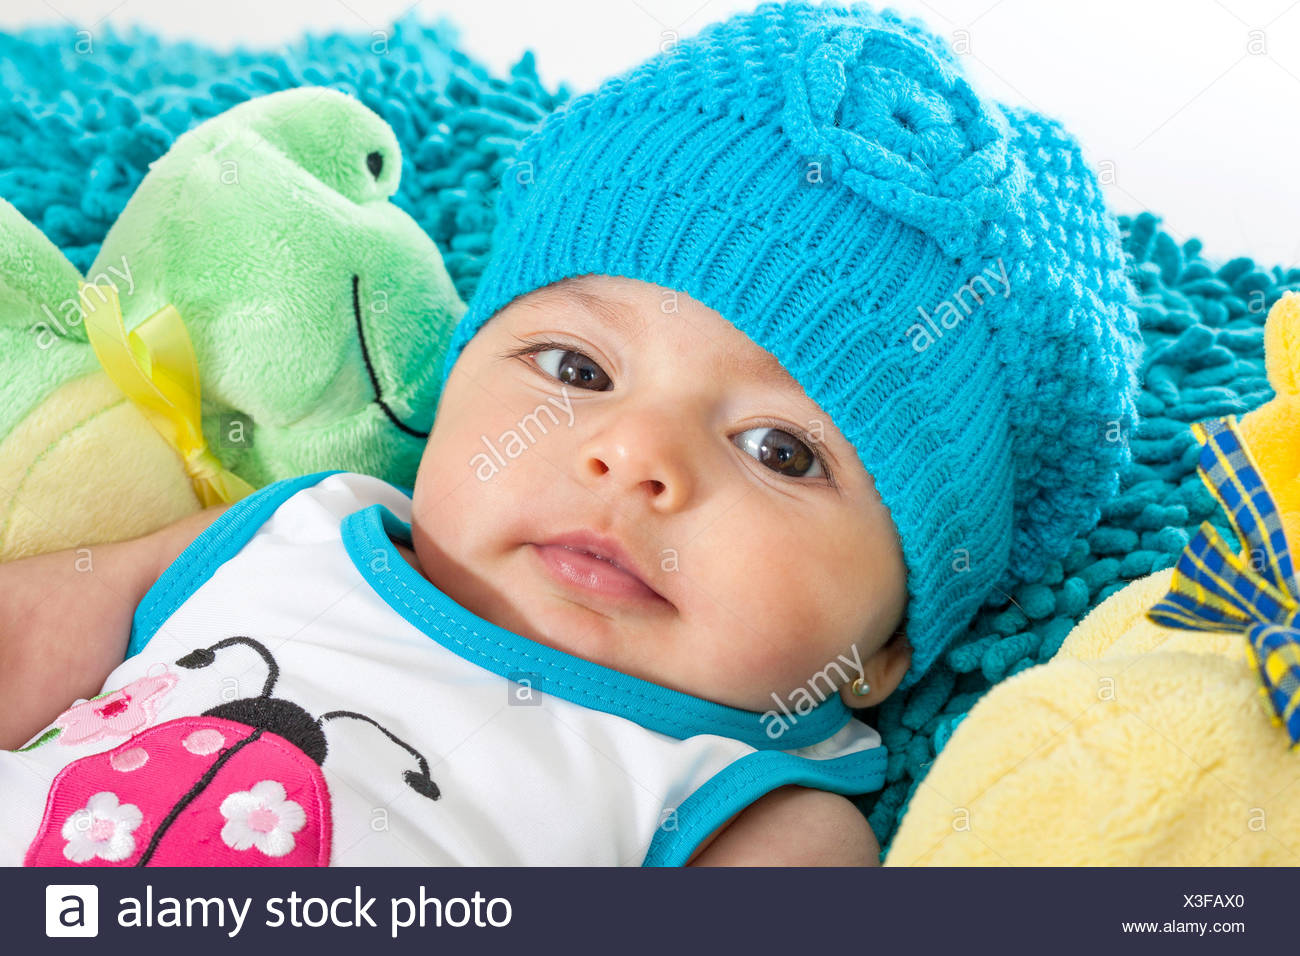 Four months old baby girl wearing a blue cap - Stock Image